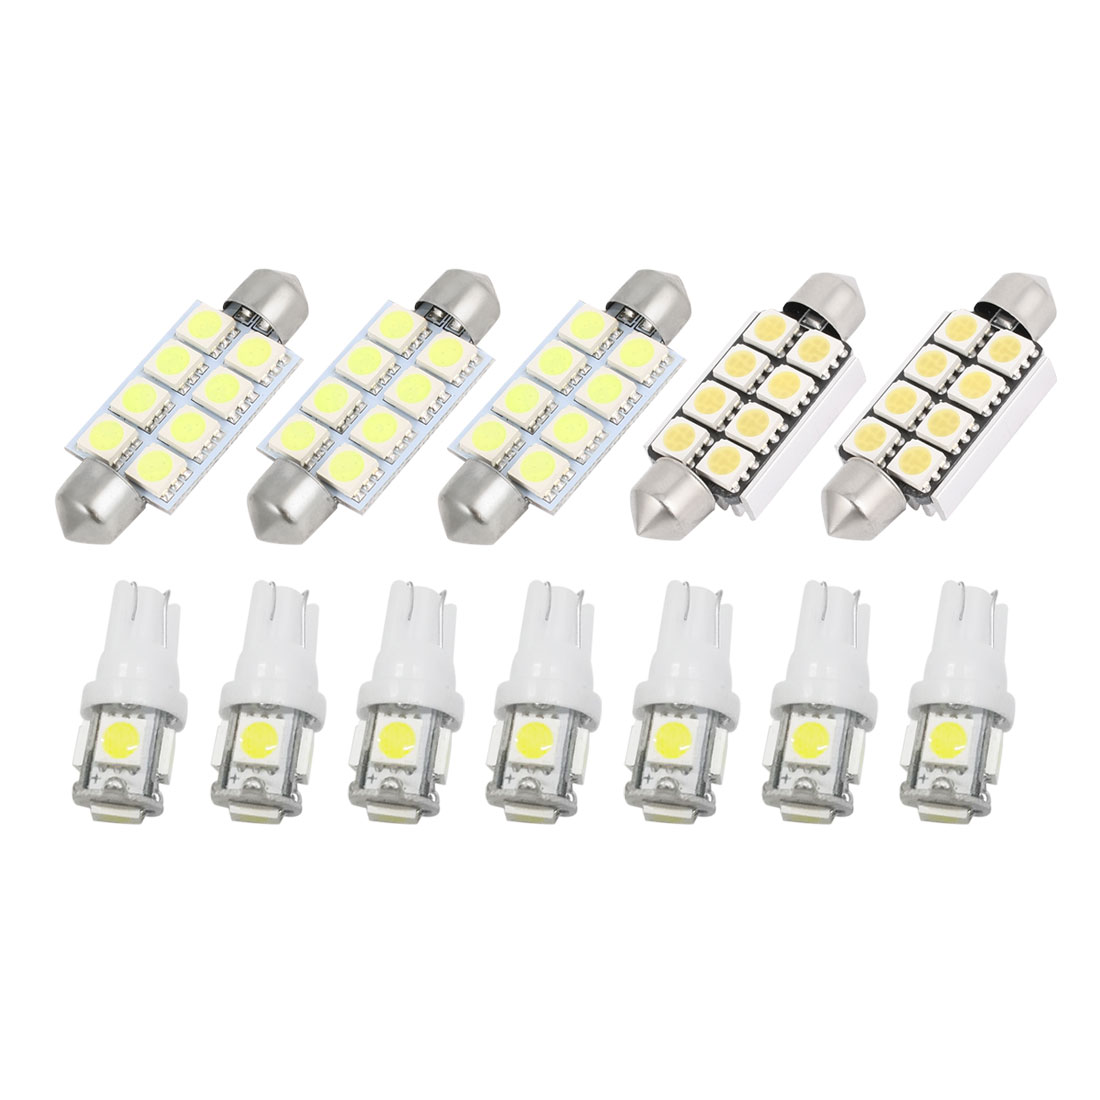 12 Pcs White LED Canbus Dome Light Interior Lamp Kit for 2002-2011 Dodge Ram